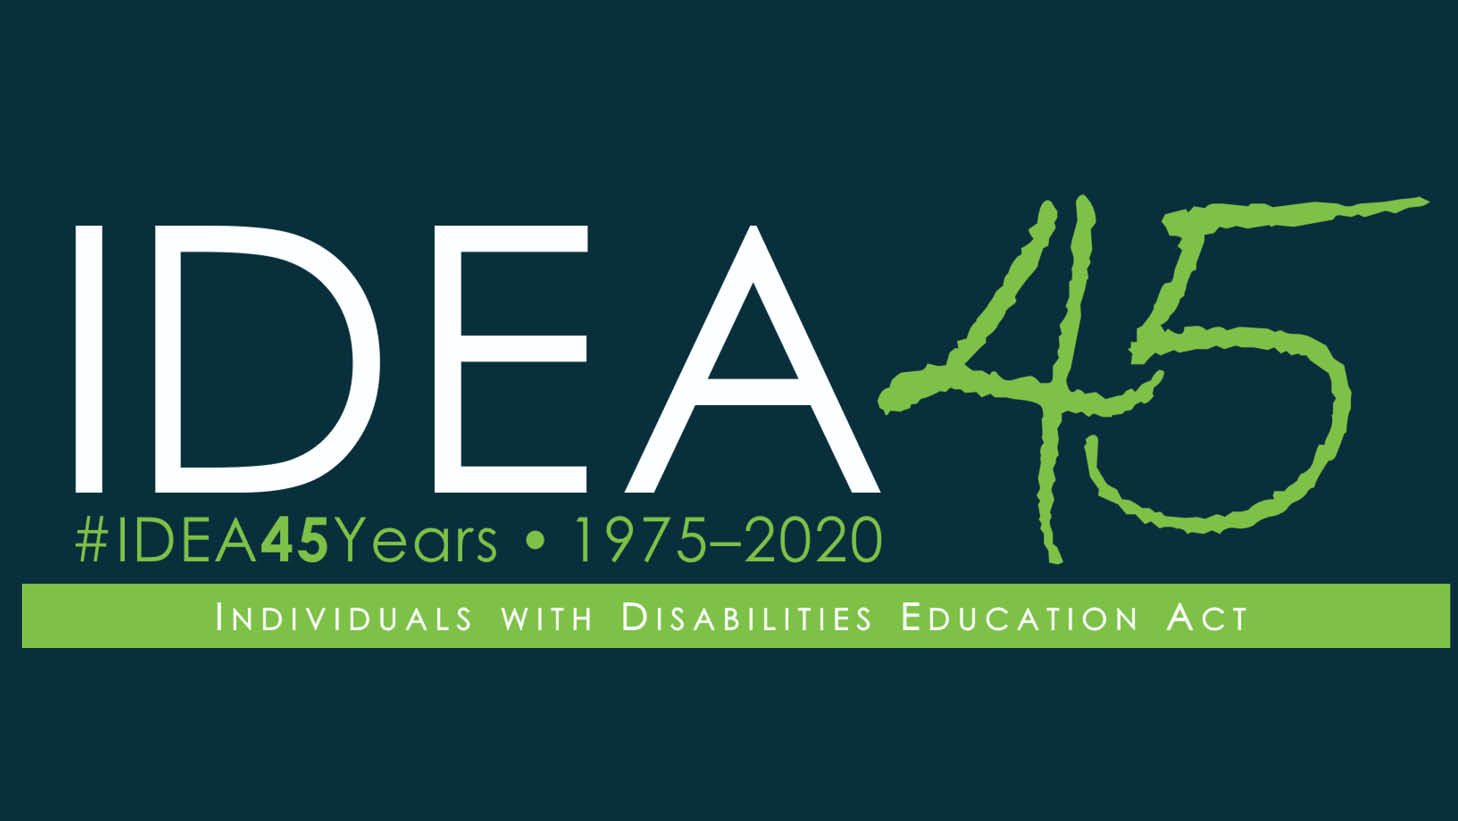 featured image for 45th Anniversary of the Individuals with Disabilities Education Act (IDEA)